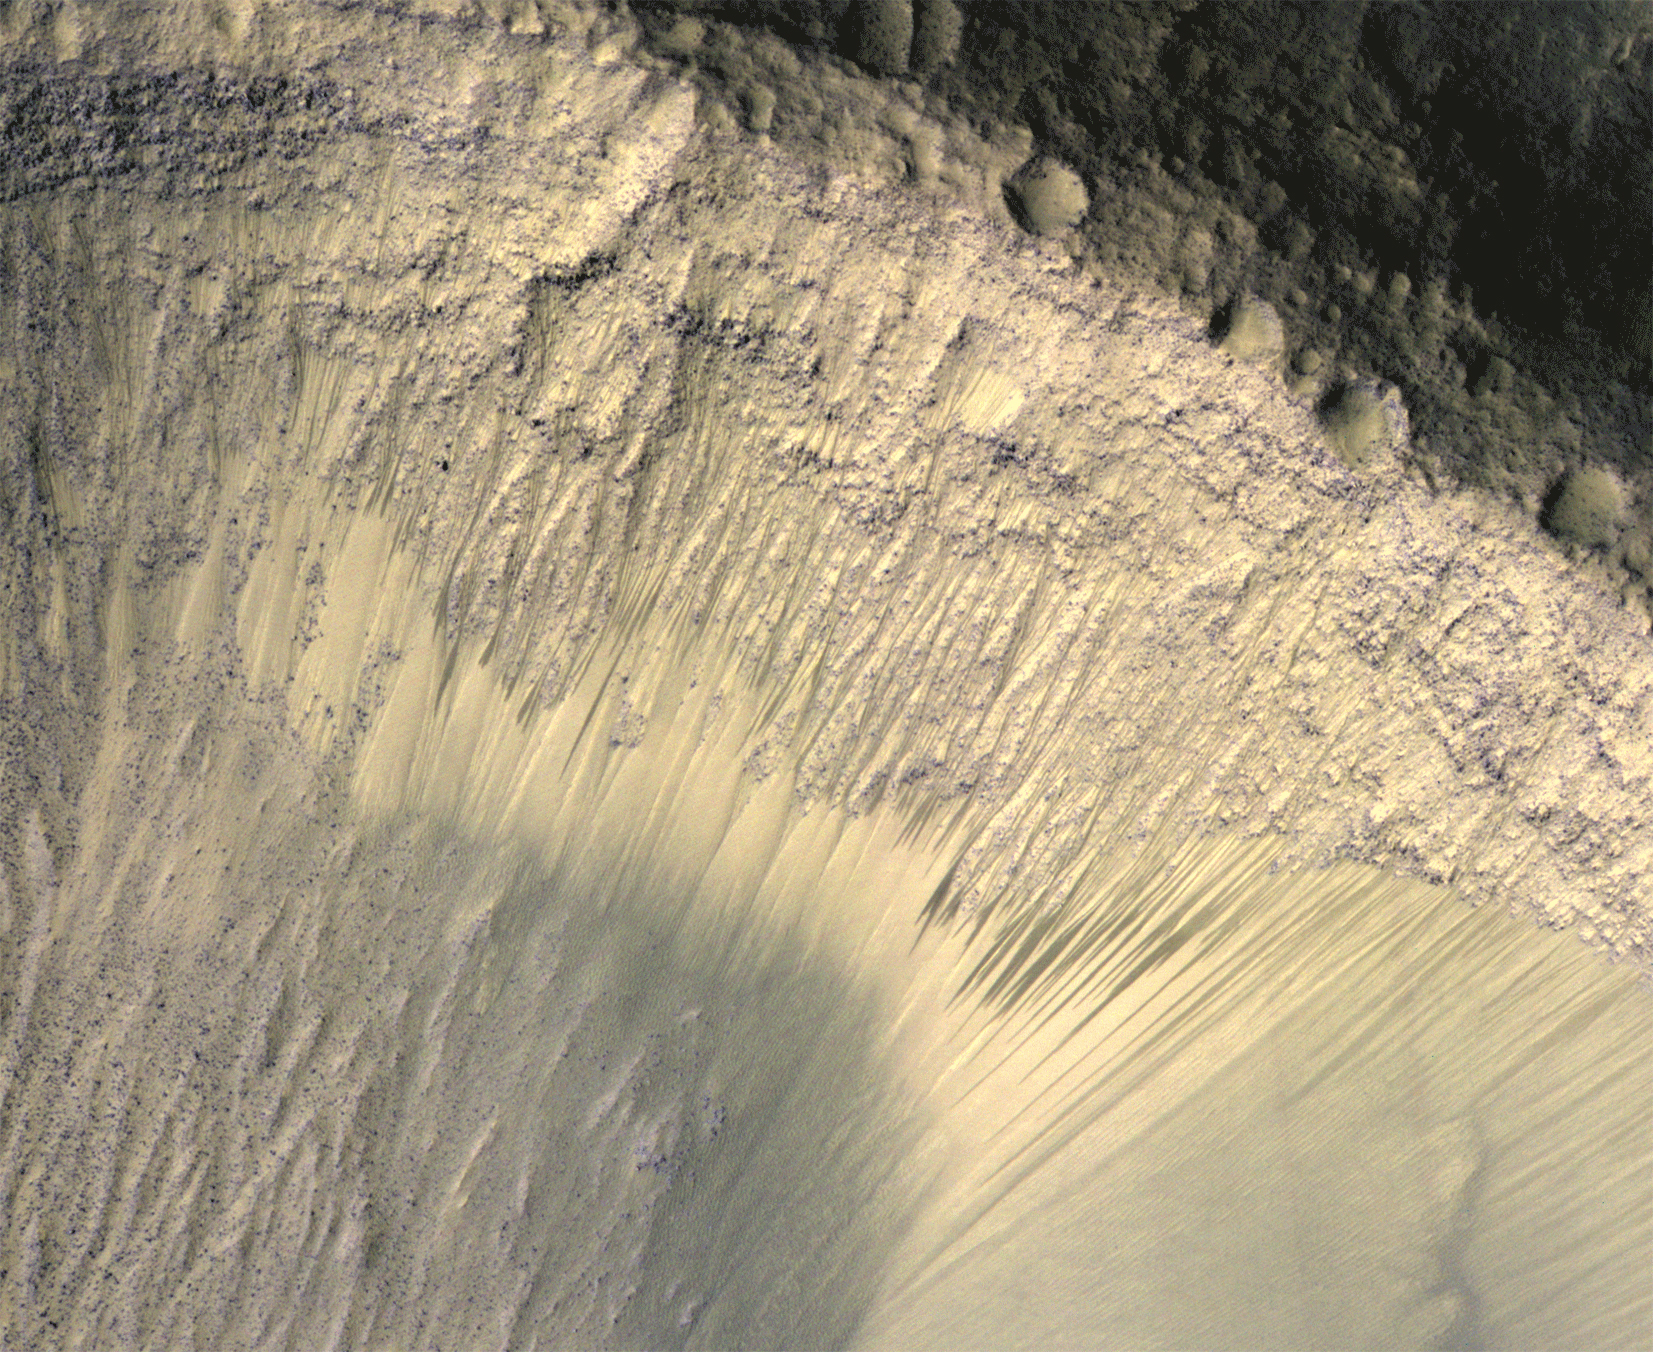 An image of recurring slope lineae on Mars, which are believed to represent the movement of briny water on the Red Planet's surface. These areas may be hospitable to microbes. Credit: NASA/JPL-Caltech/Univ. of Arizona Image credit: None